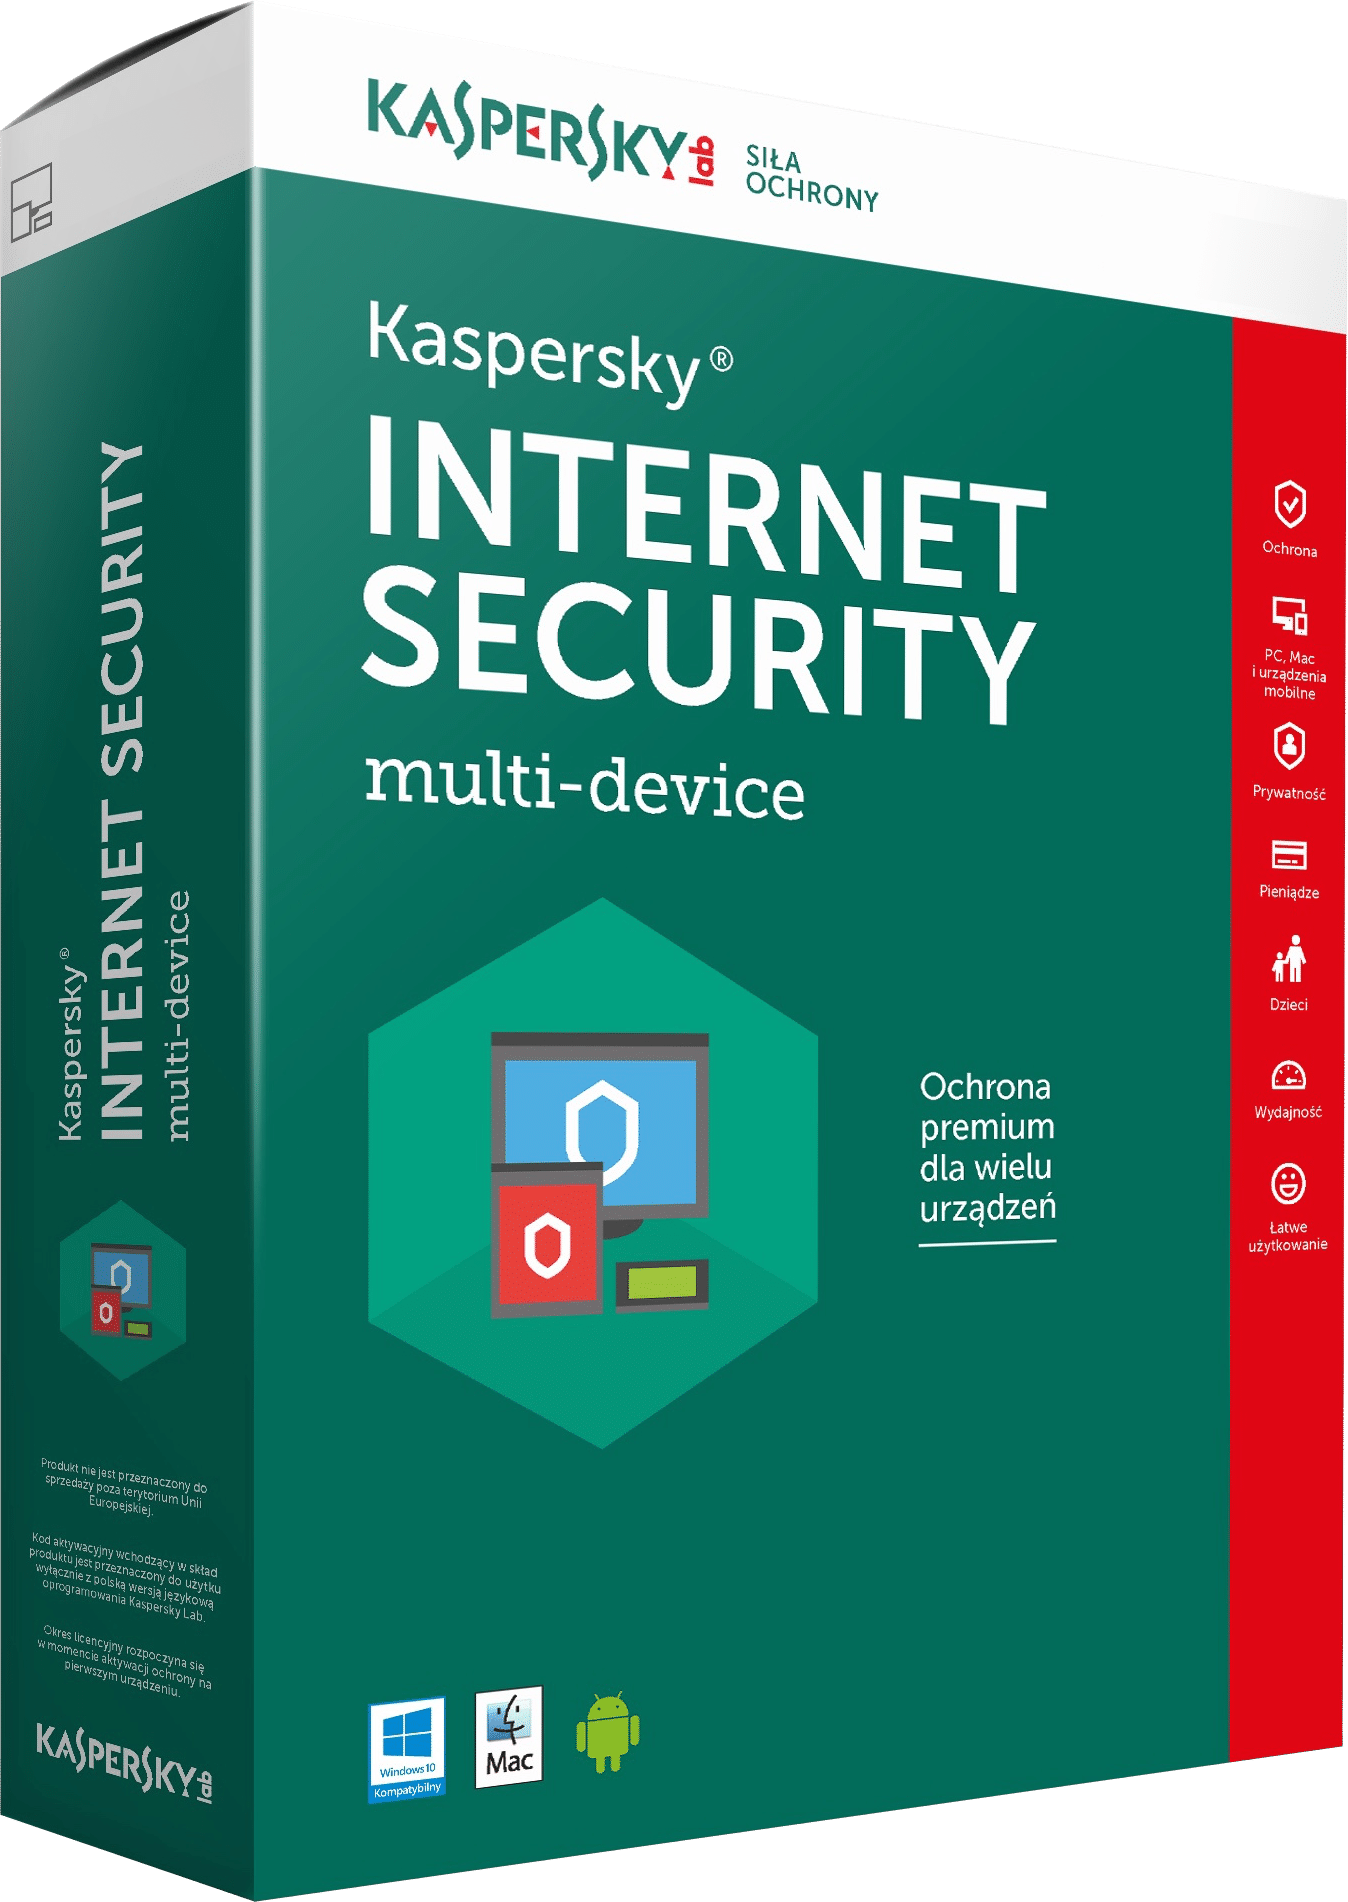 kaspersky internet security free download for windows 7